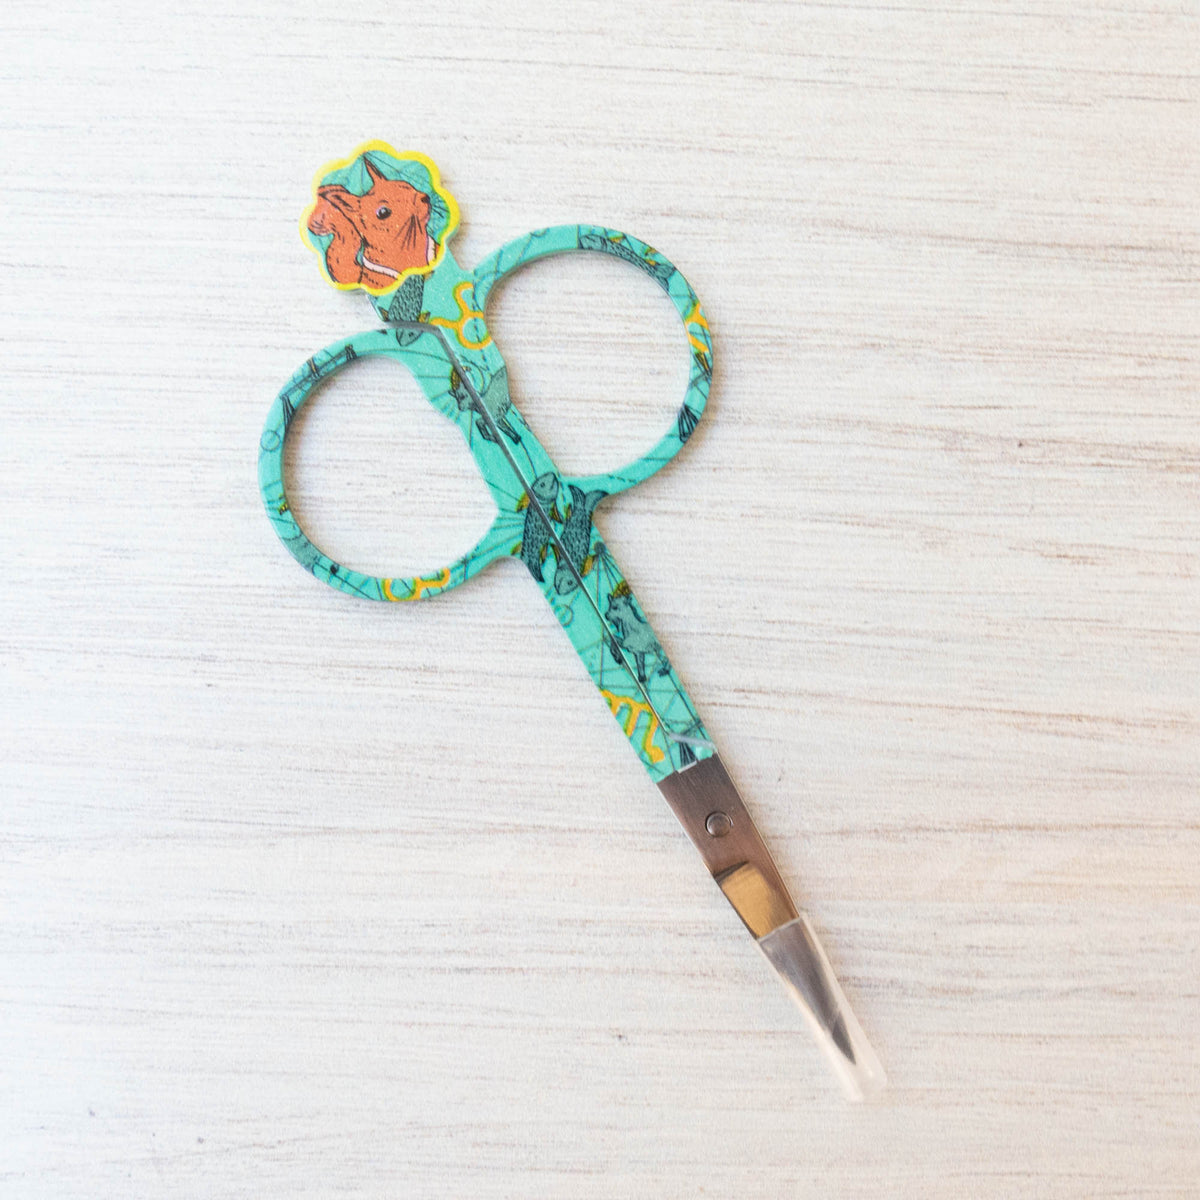 Bohin Embroidery Scissors - Squirrel